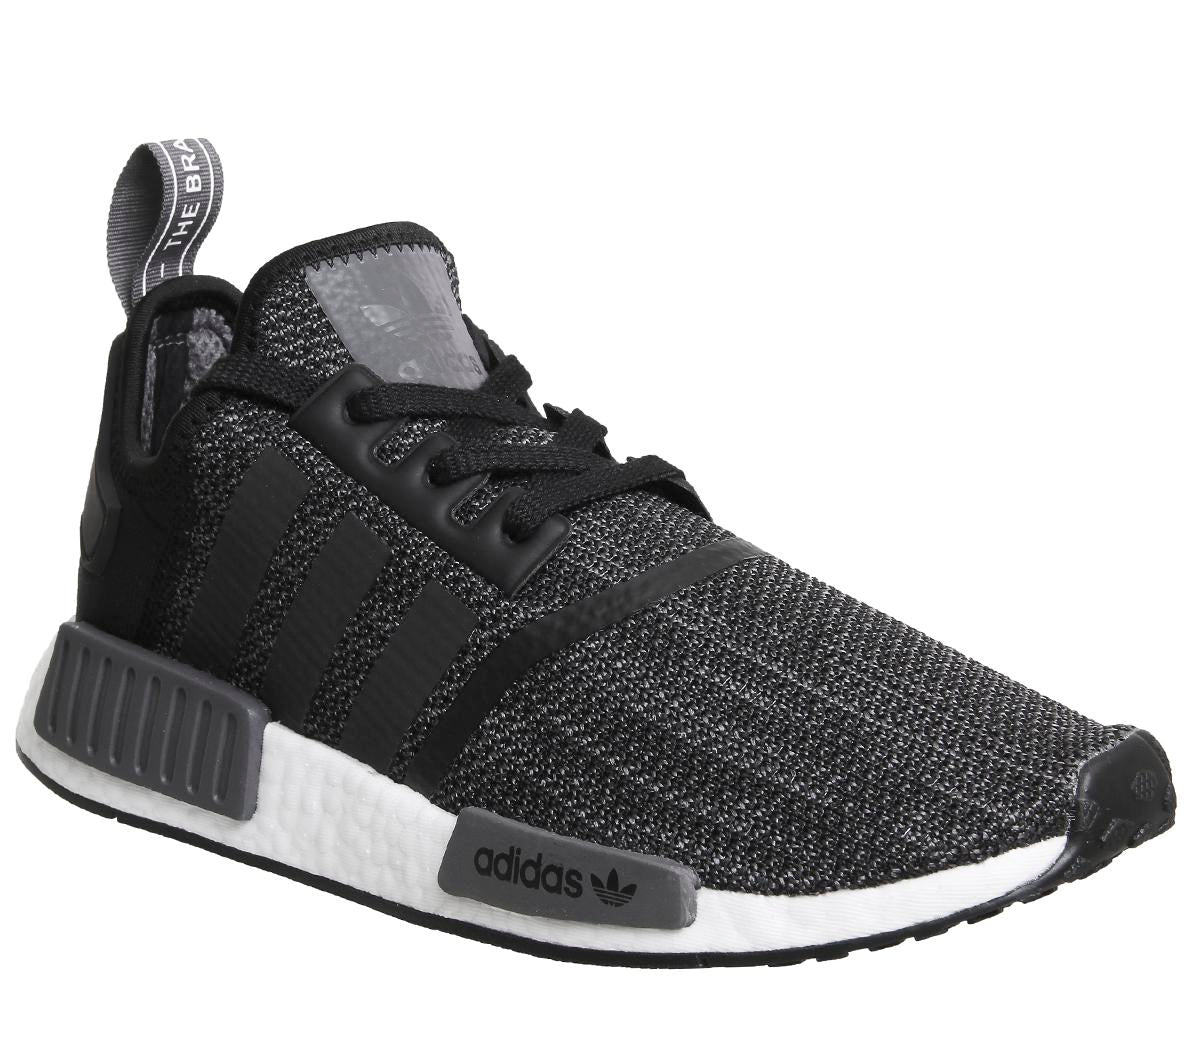 adidas nmd r1 womens light grey